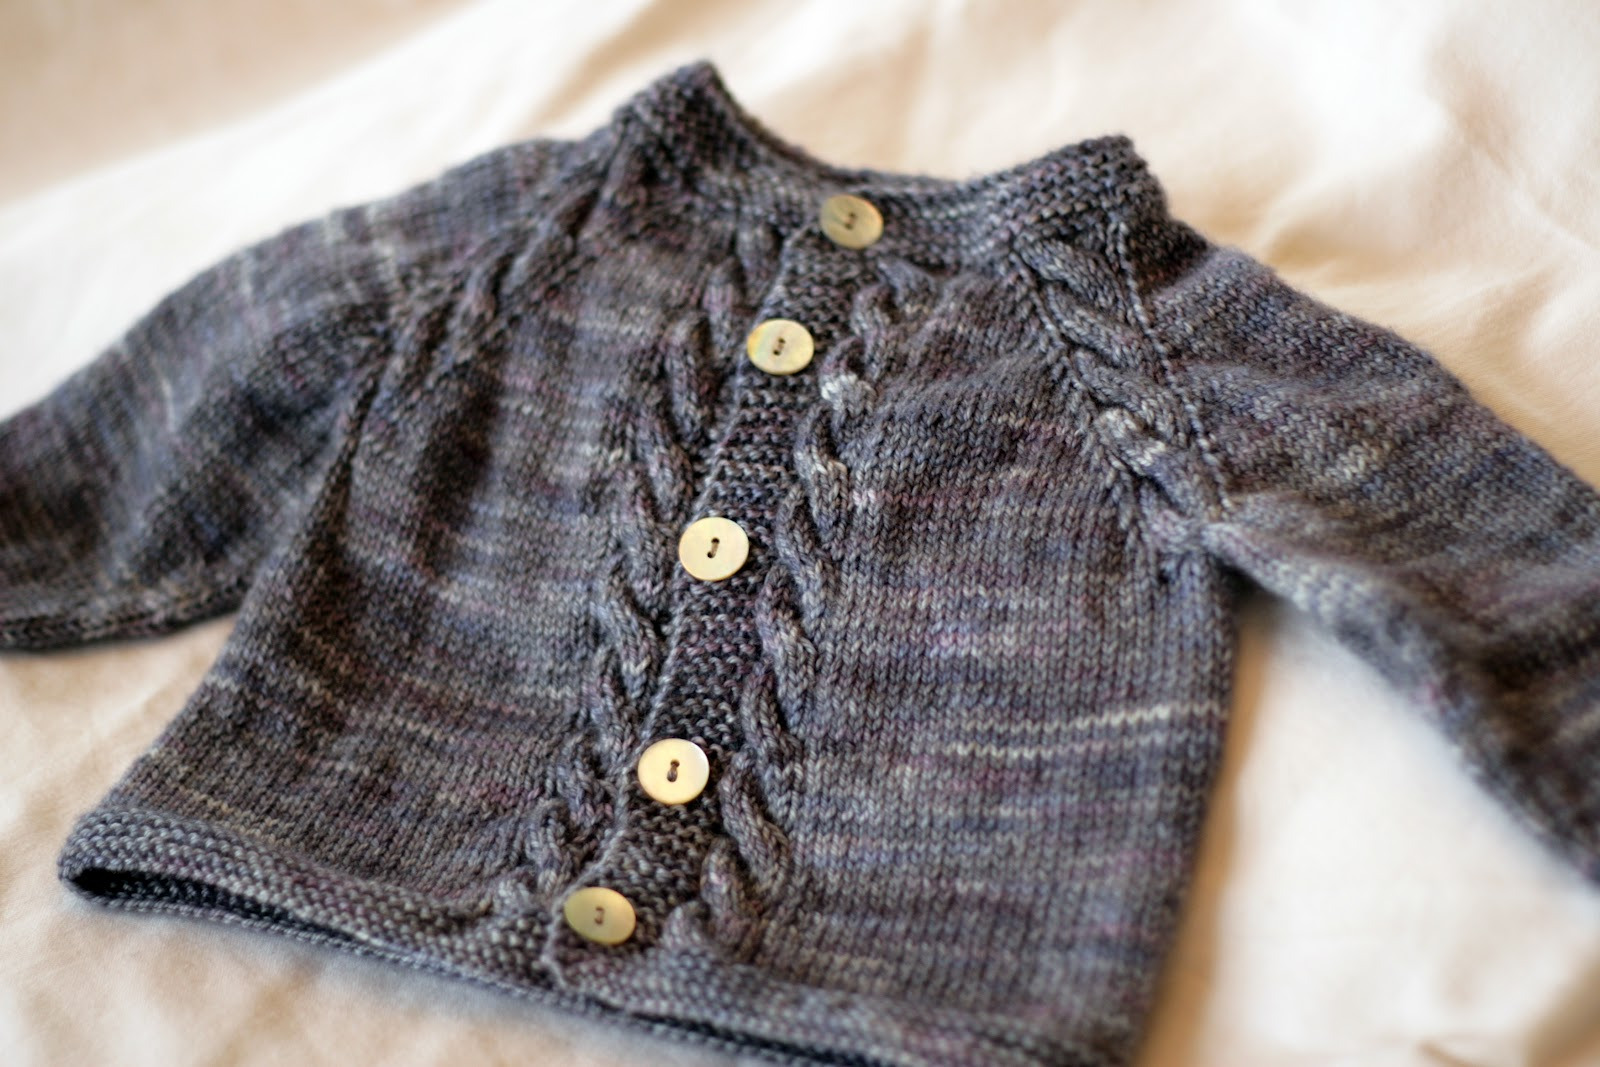 KATE PRESTON HANDKNITS /BLOG: The Sunnyside Baby Cardigan